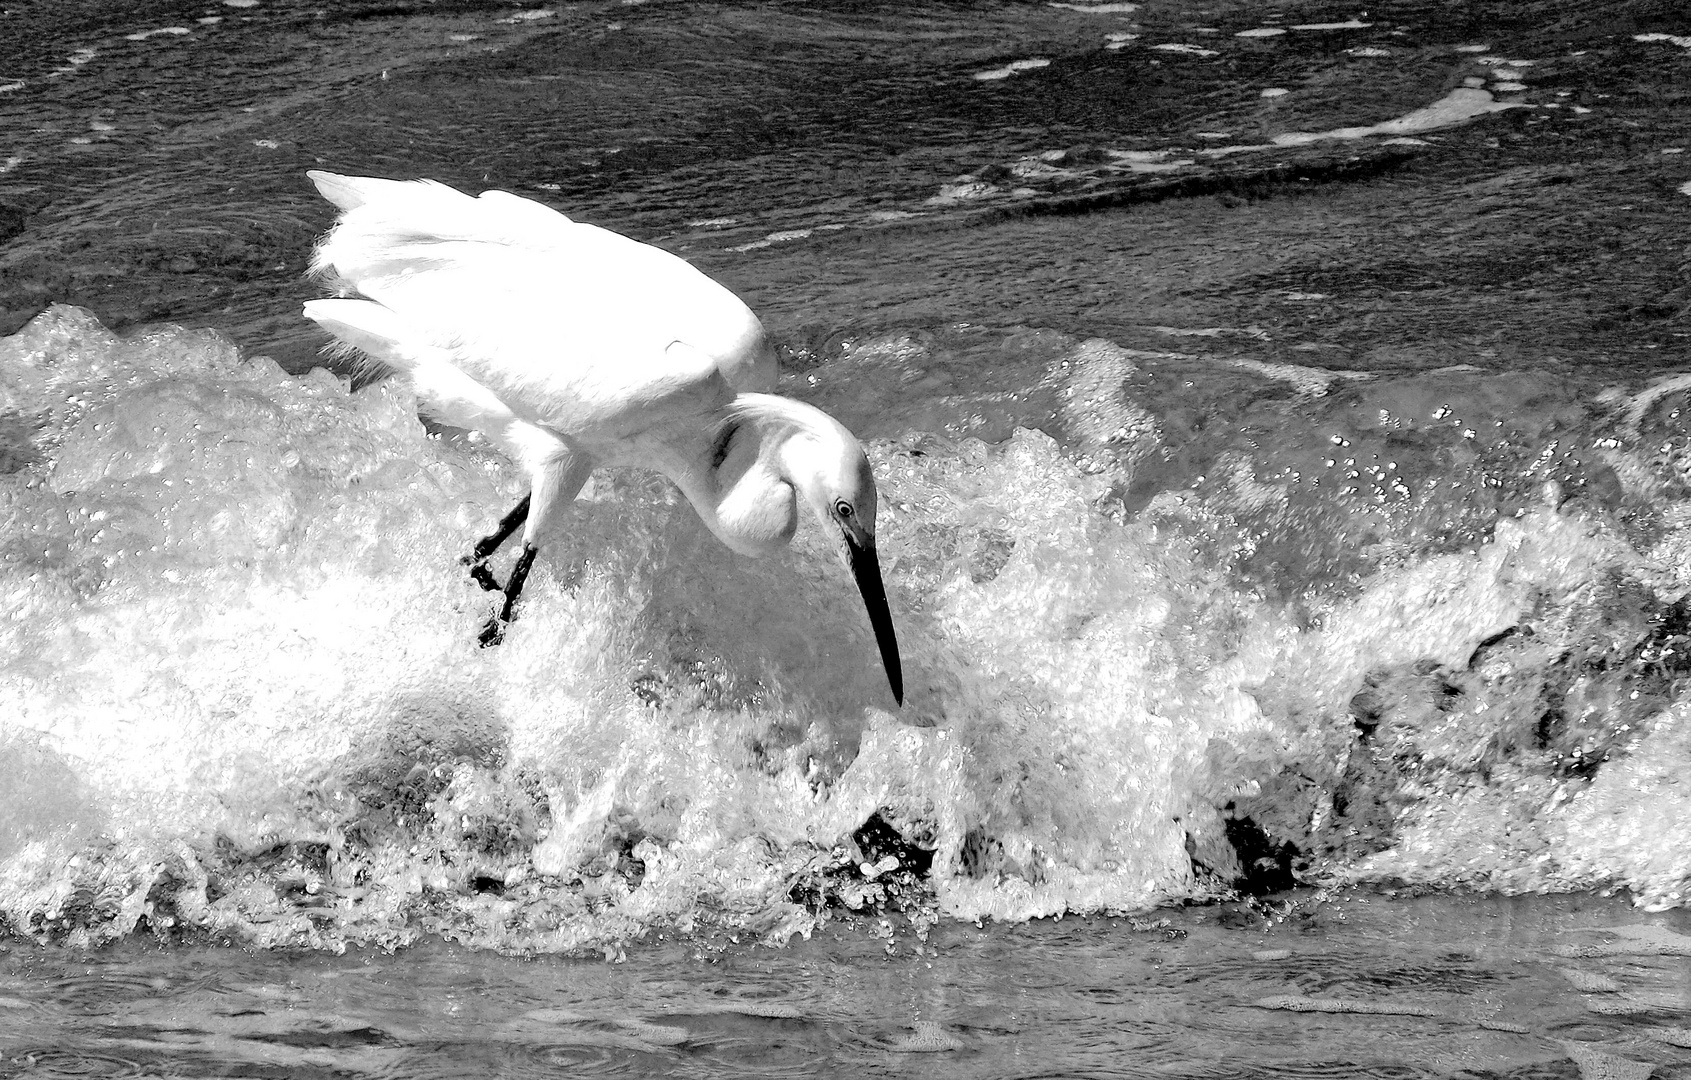 Bird Surfing BN